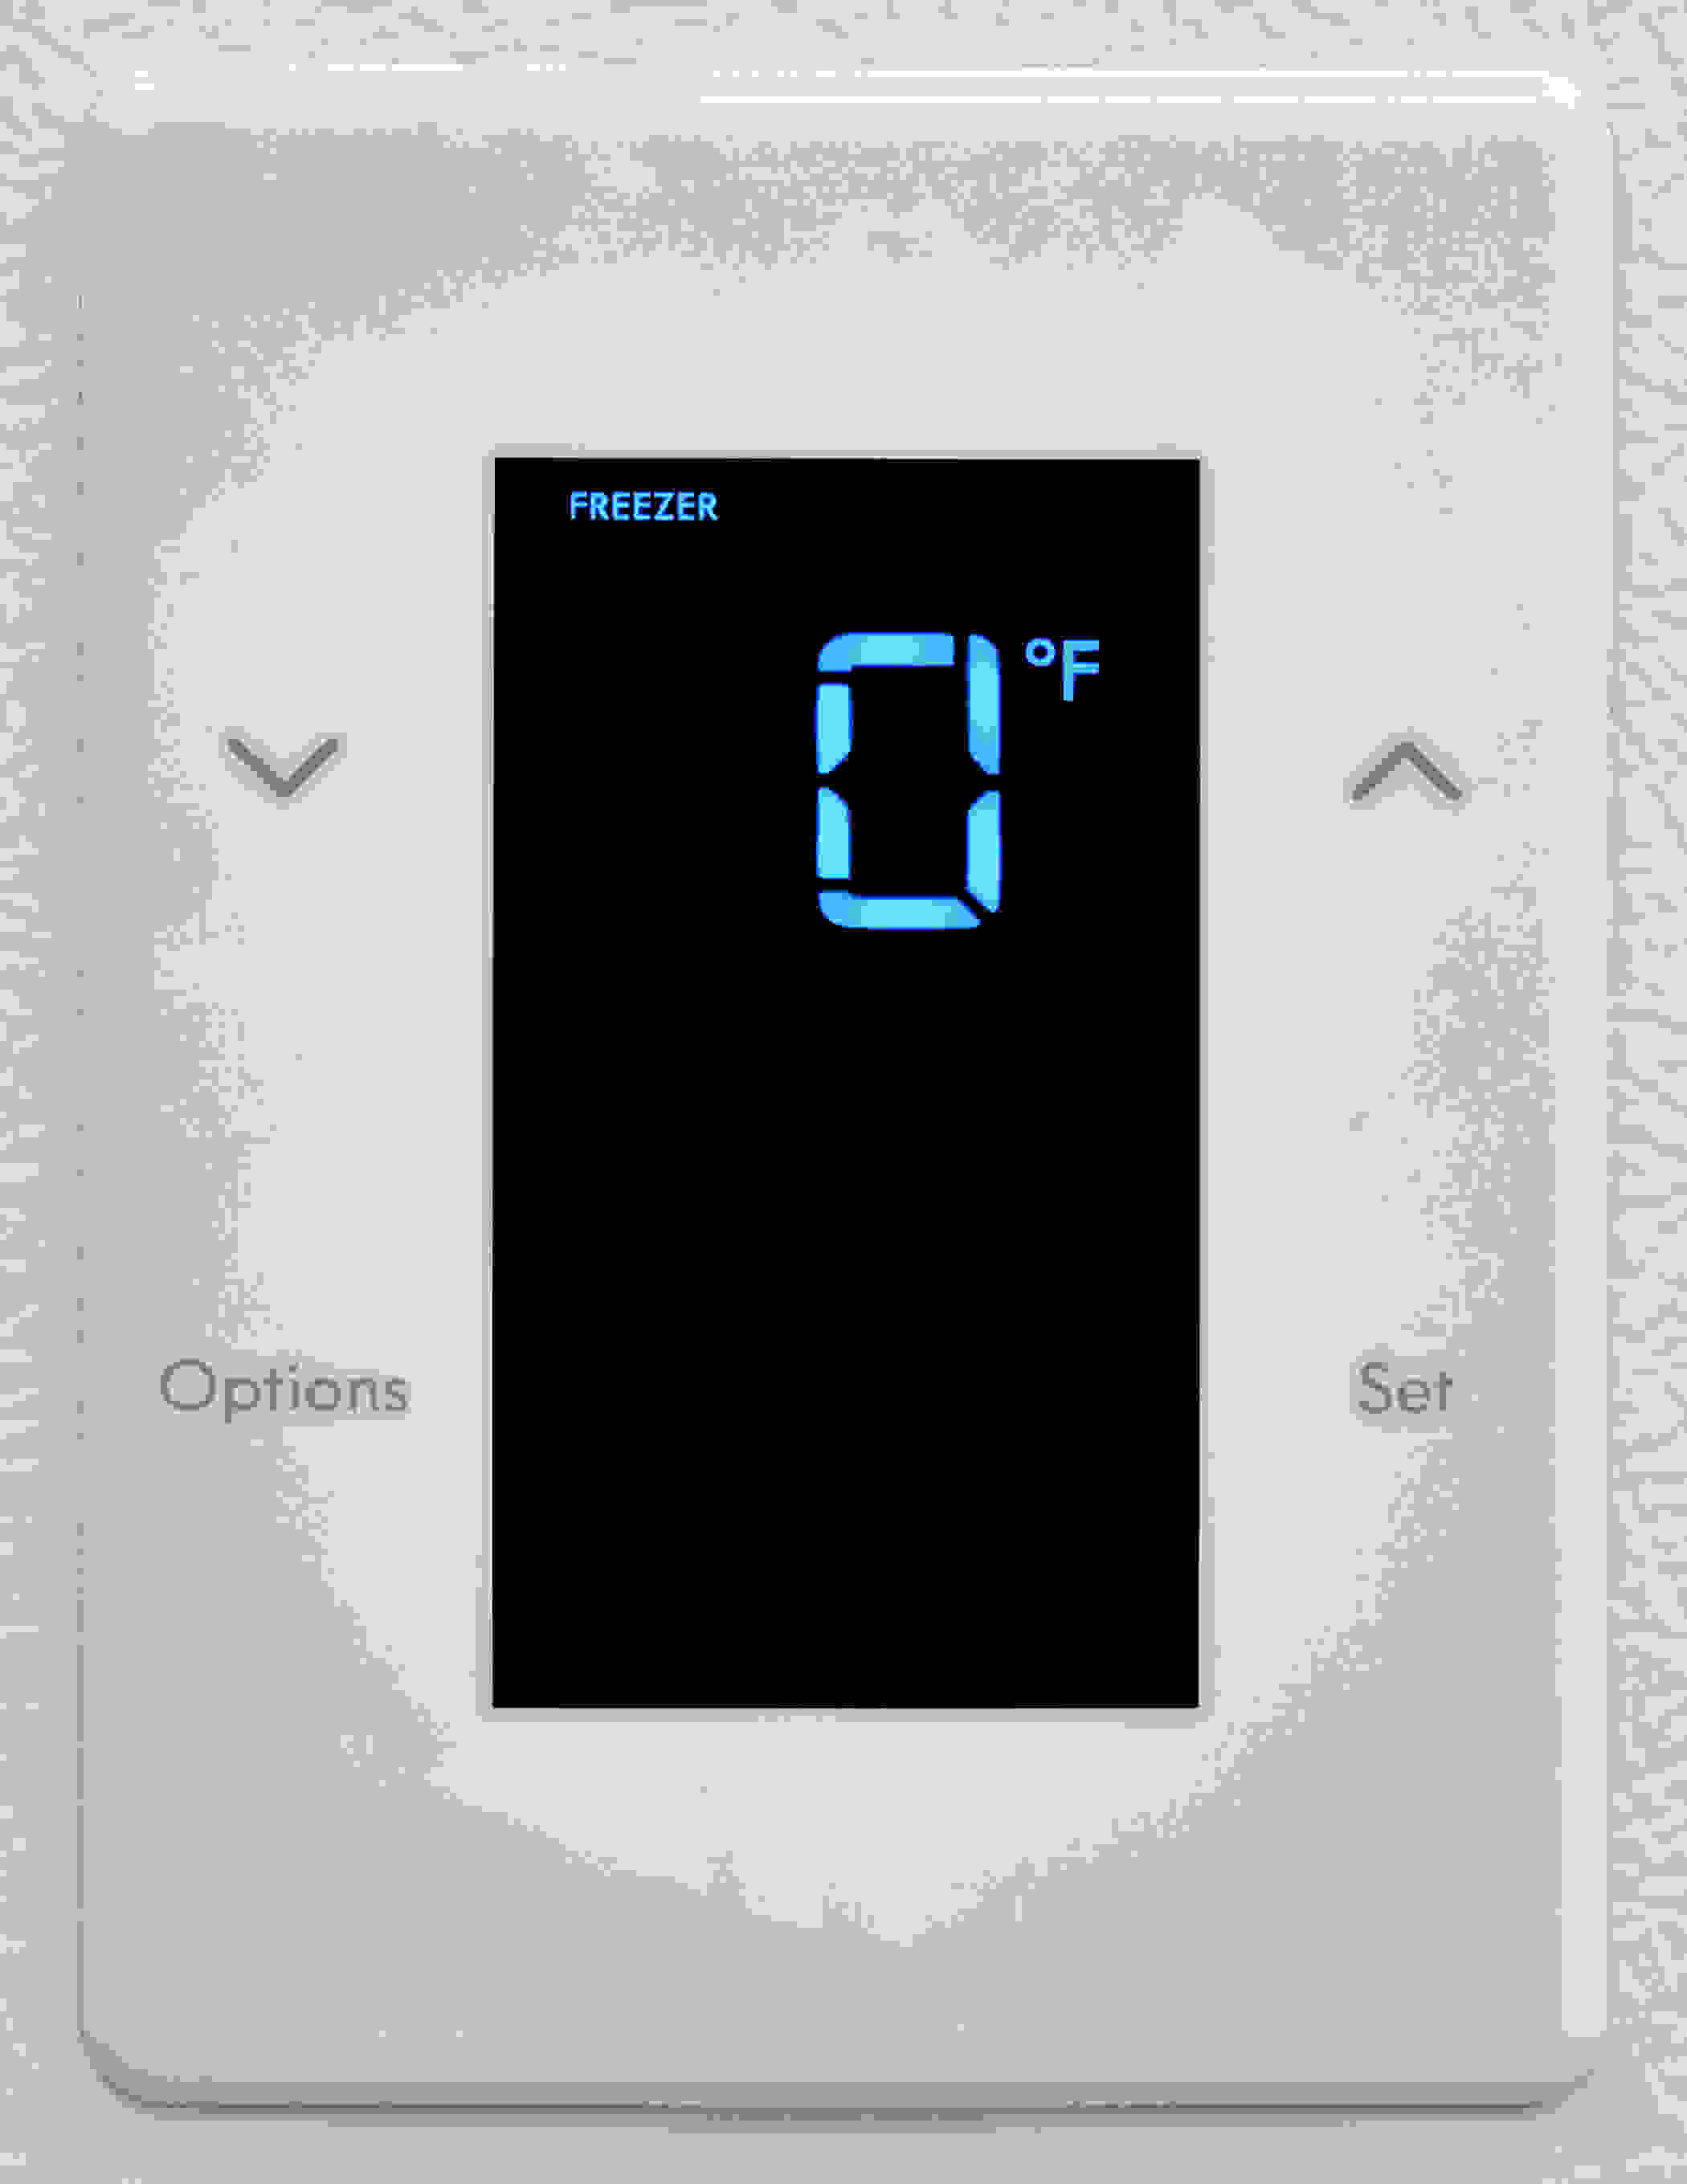 Degree-based controls are always a welcome addition to any freezer like the Kenmore Elite 17202.